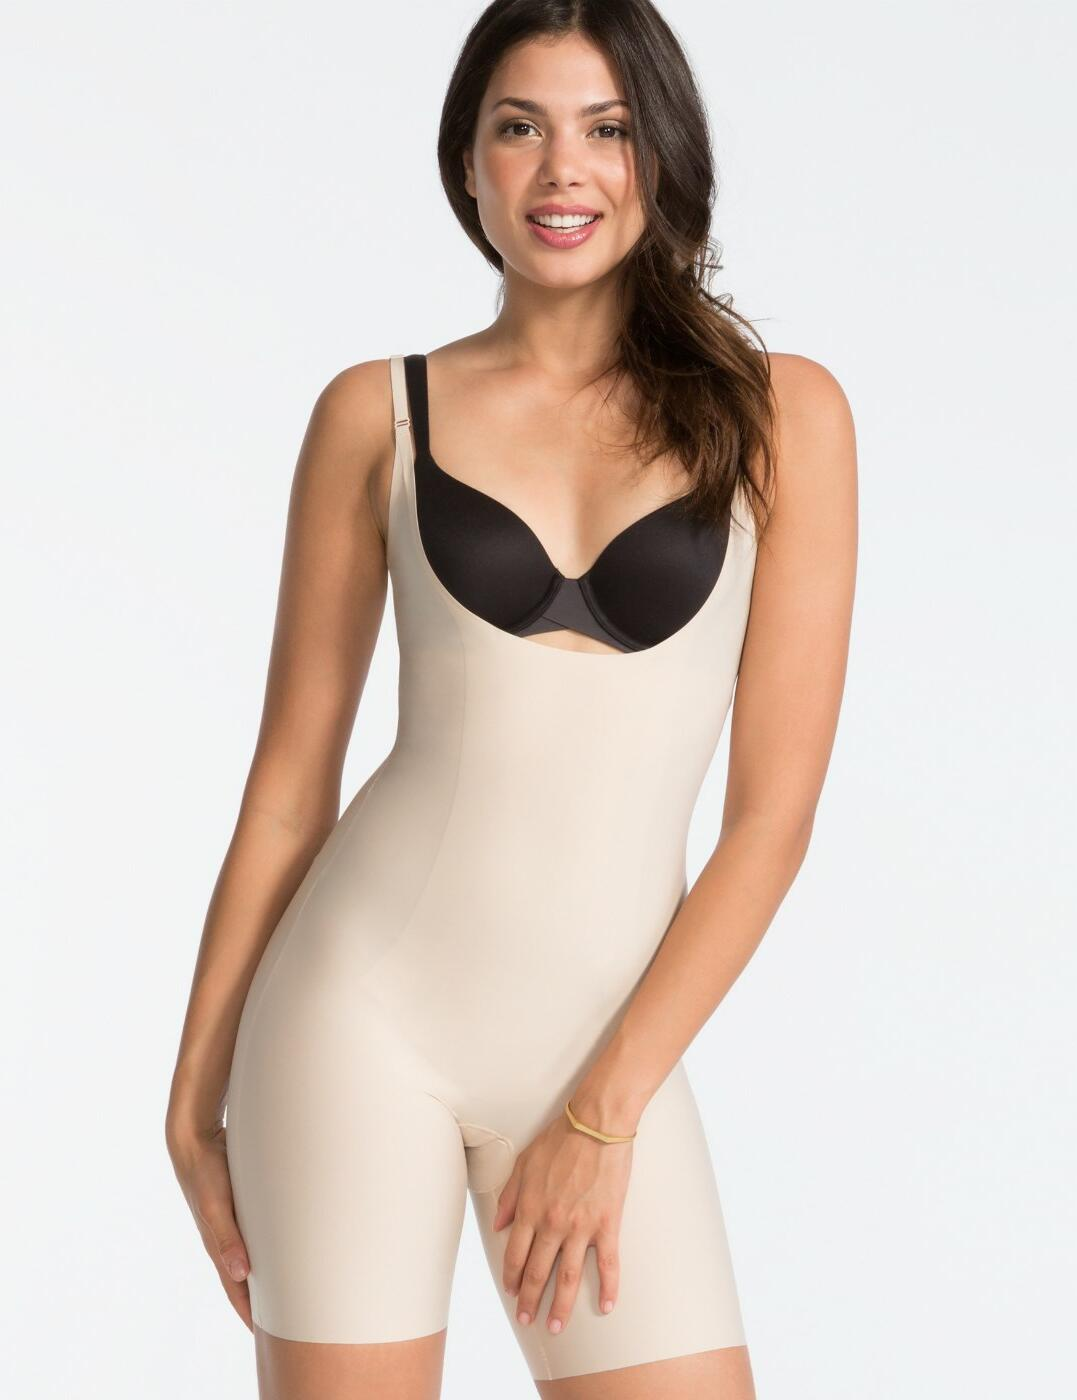 10021R Spanx Thinstincts Open-Bust Mid-Thigh Body - 10021R Soft Nude